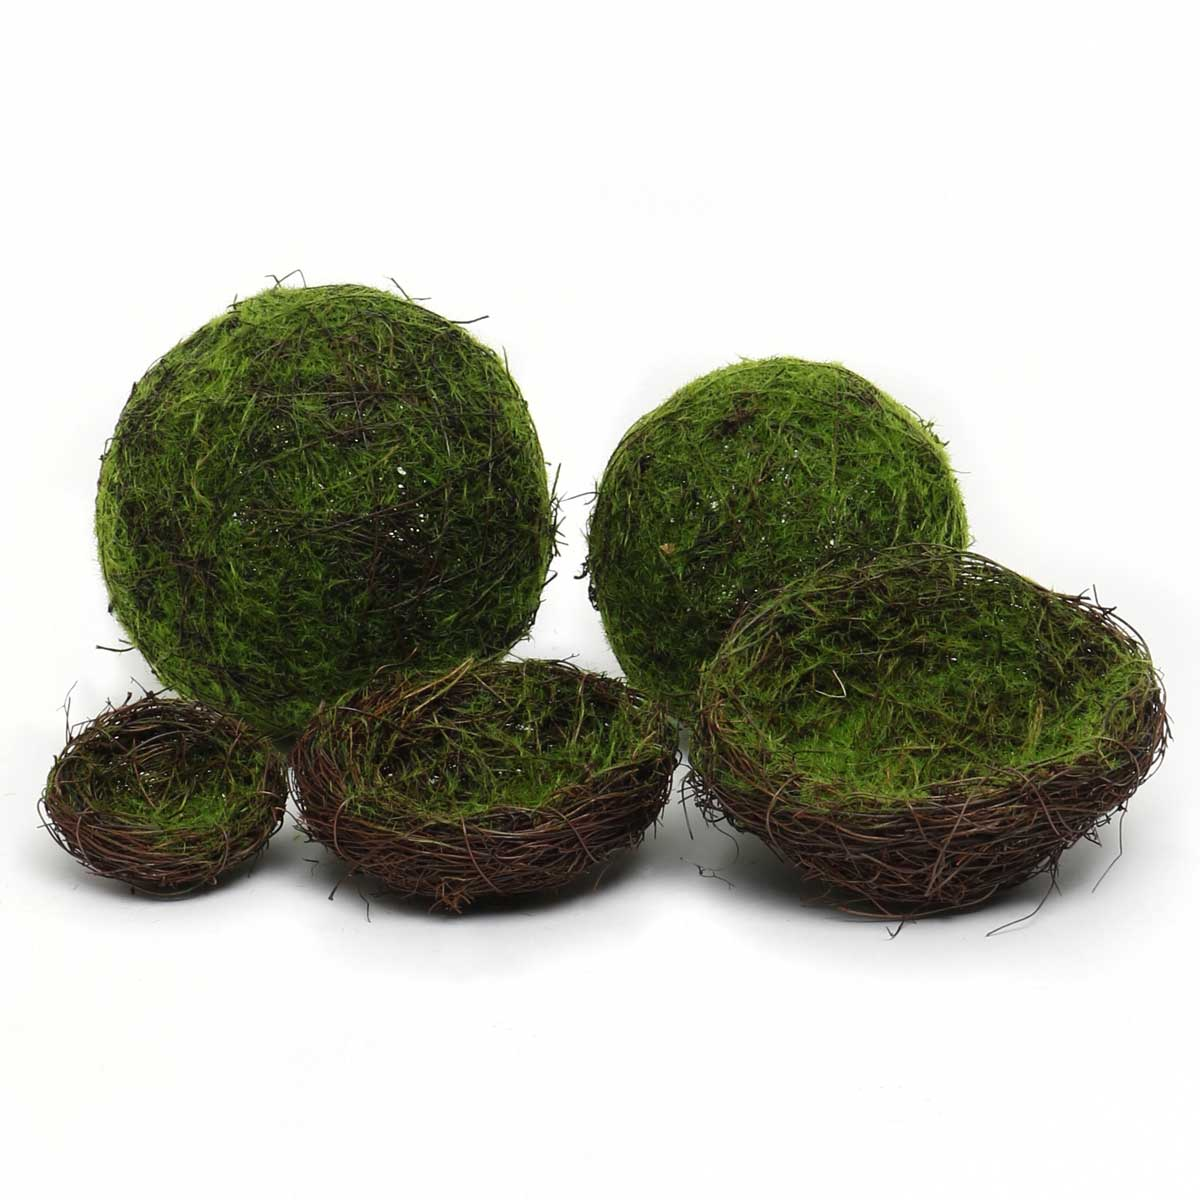 MOSS AND TWIG BALLS AND NESTS DECOR SET OF 5